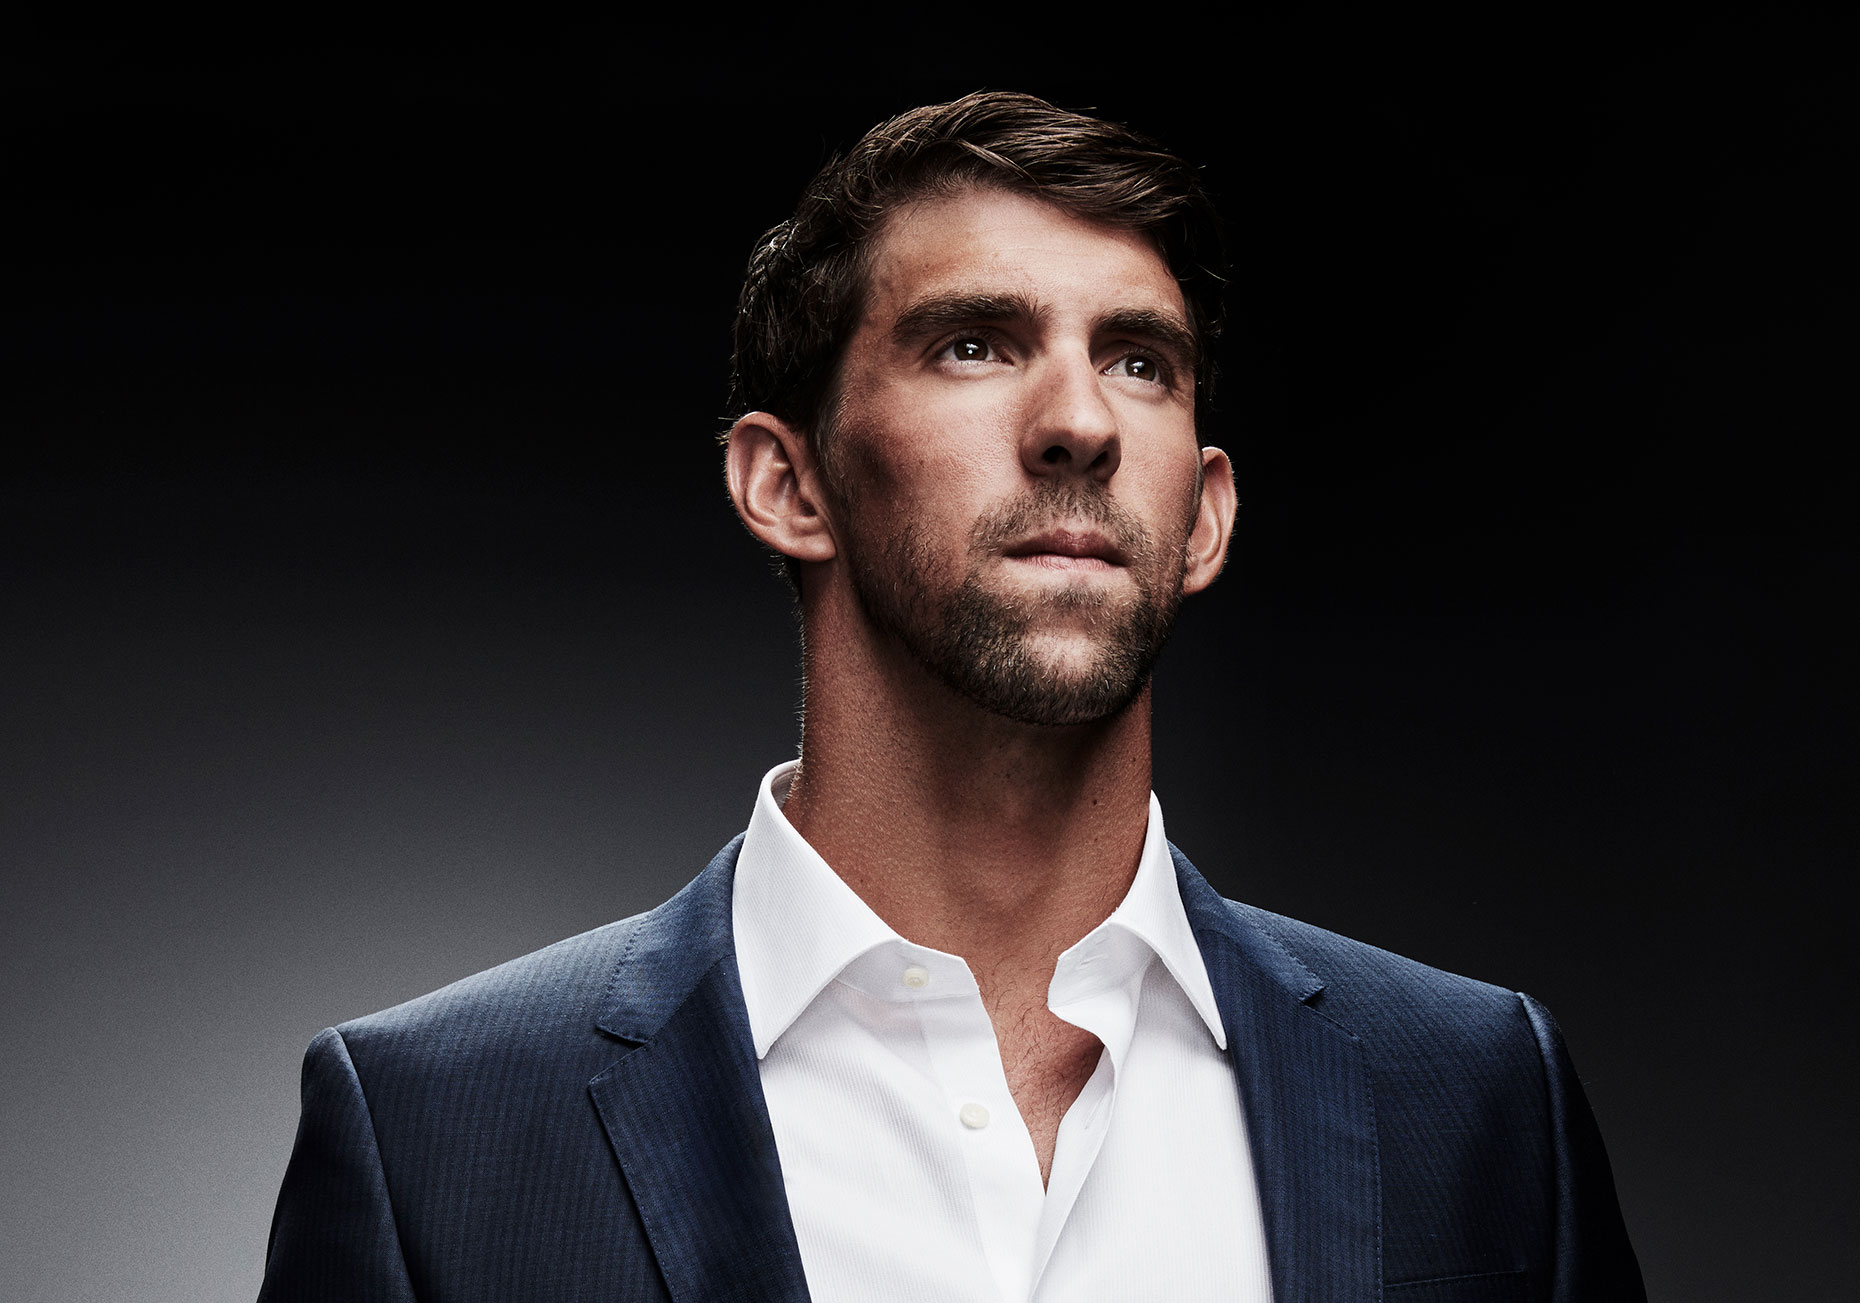 28_michael-phelps-grey_3174